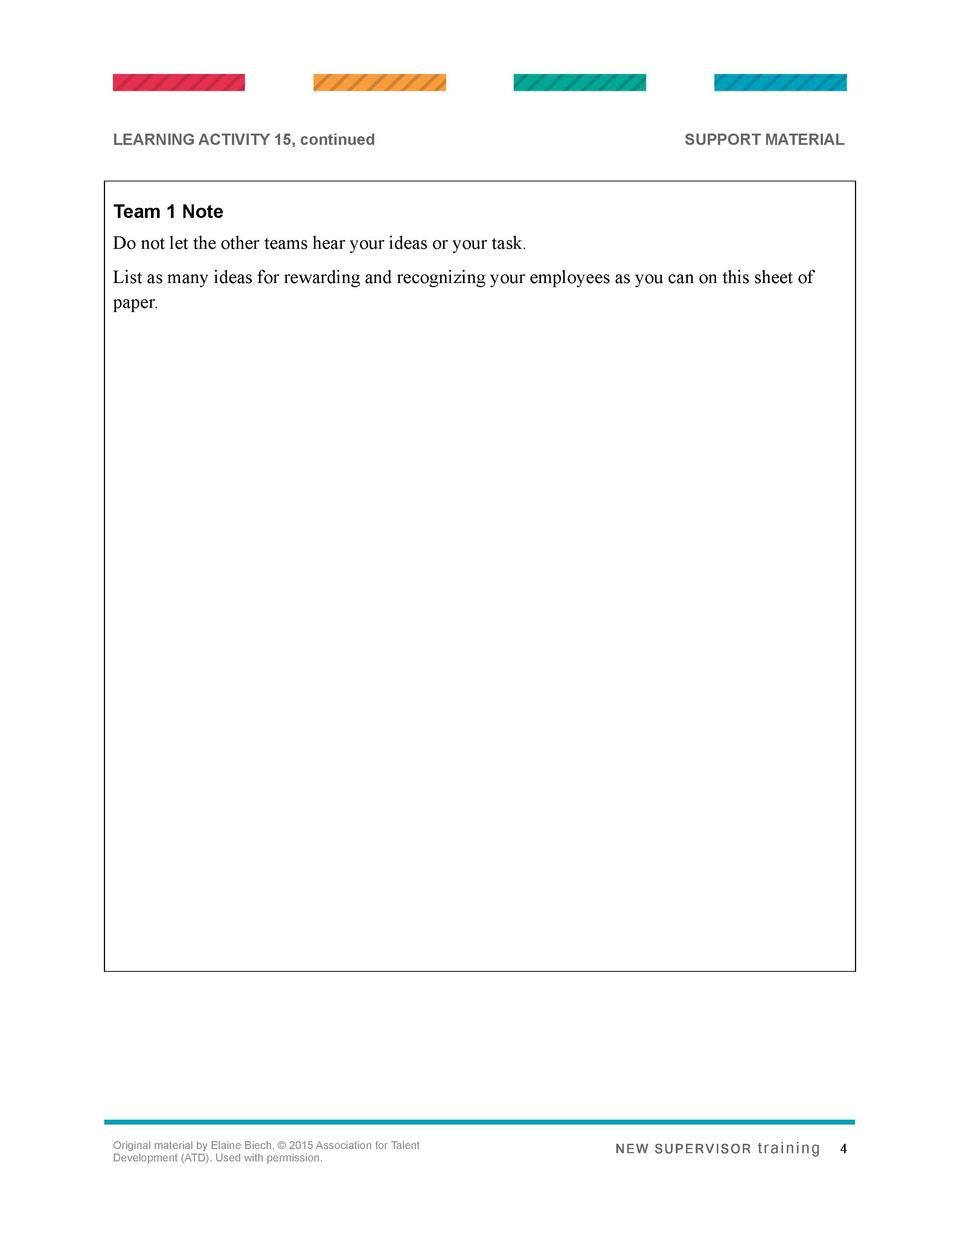 LEARNING ACTIVITY 15, continued  SUPPORT MATERIAL  Team 1 Note Do not let the other teams hear your ideas or your task. Li...